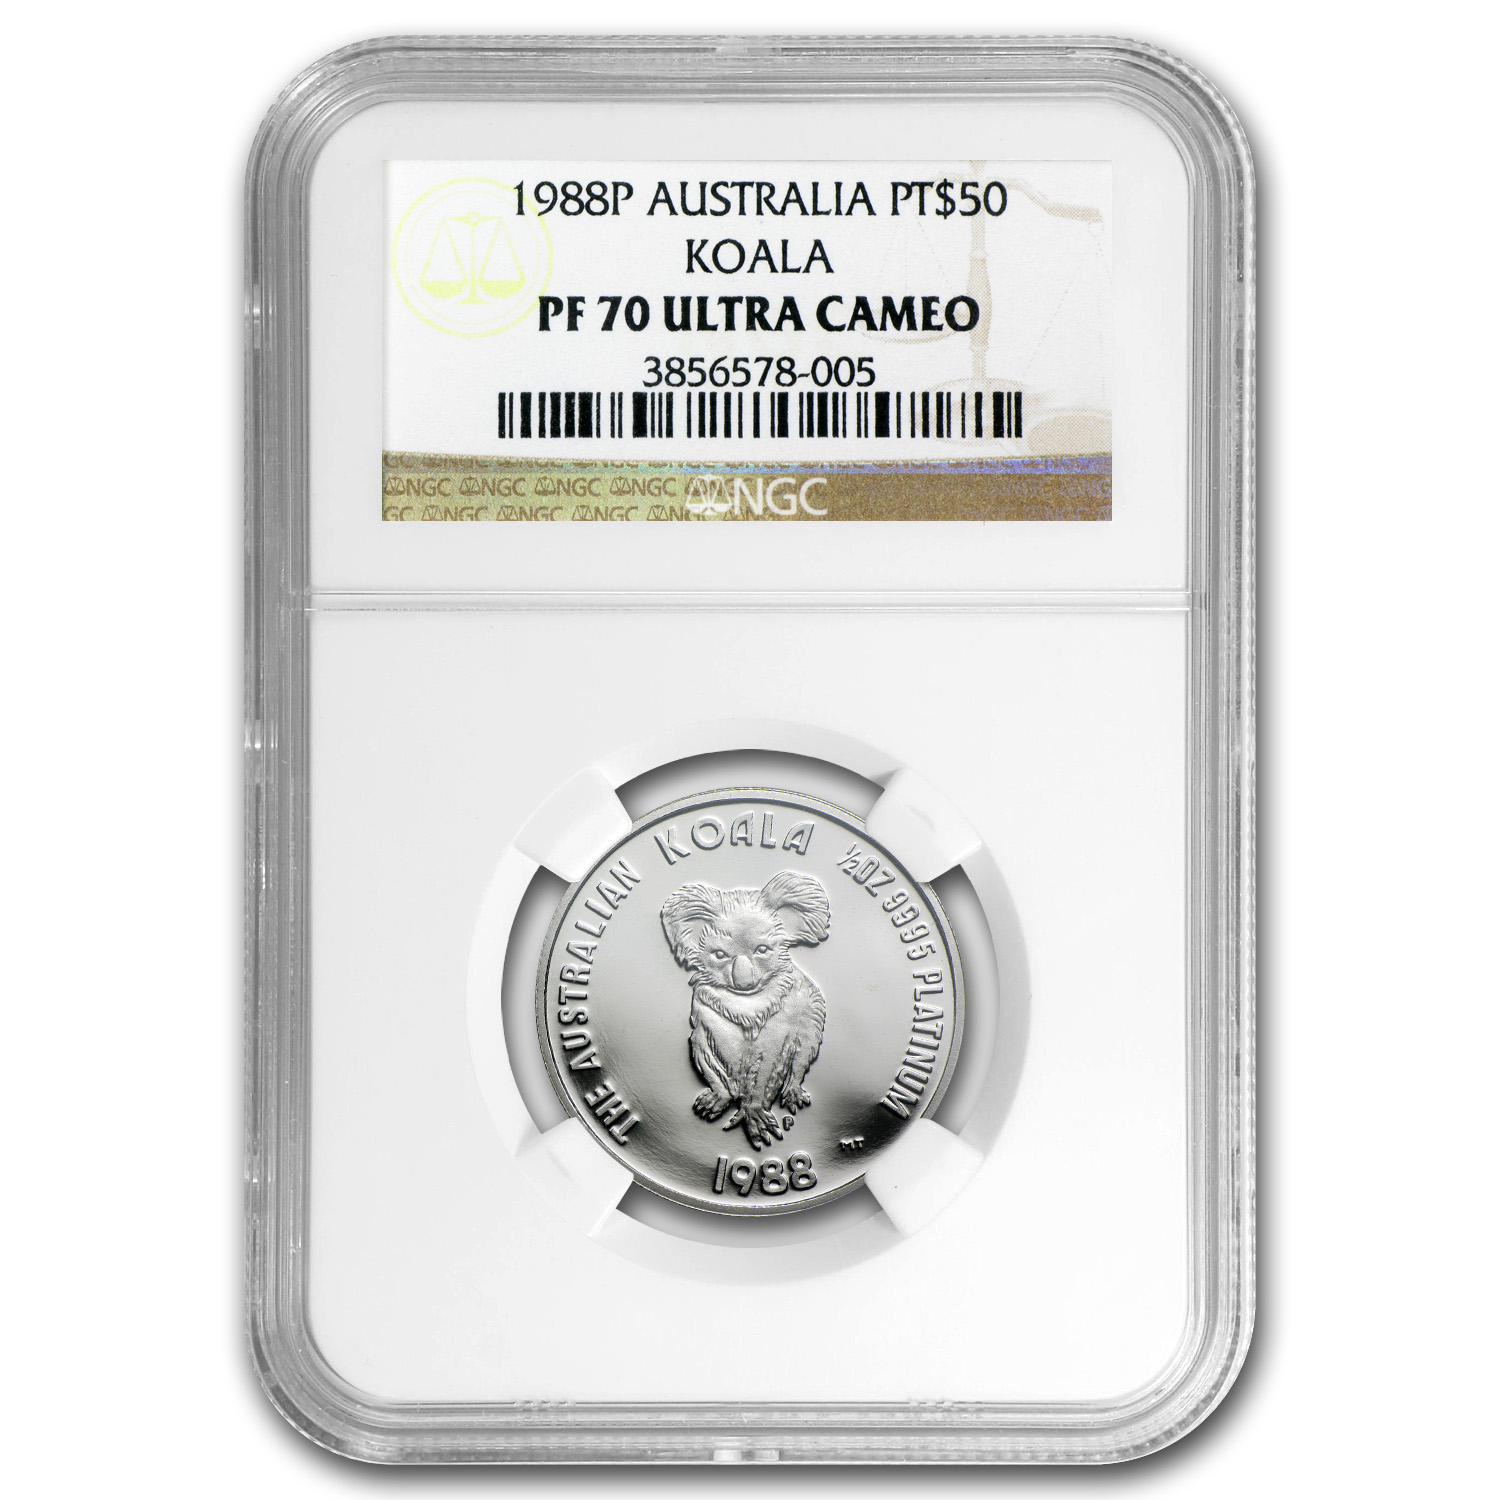 1988 Australia 1/2 oz Proof Platinum Koala PF-70 NGC